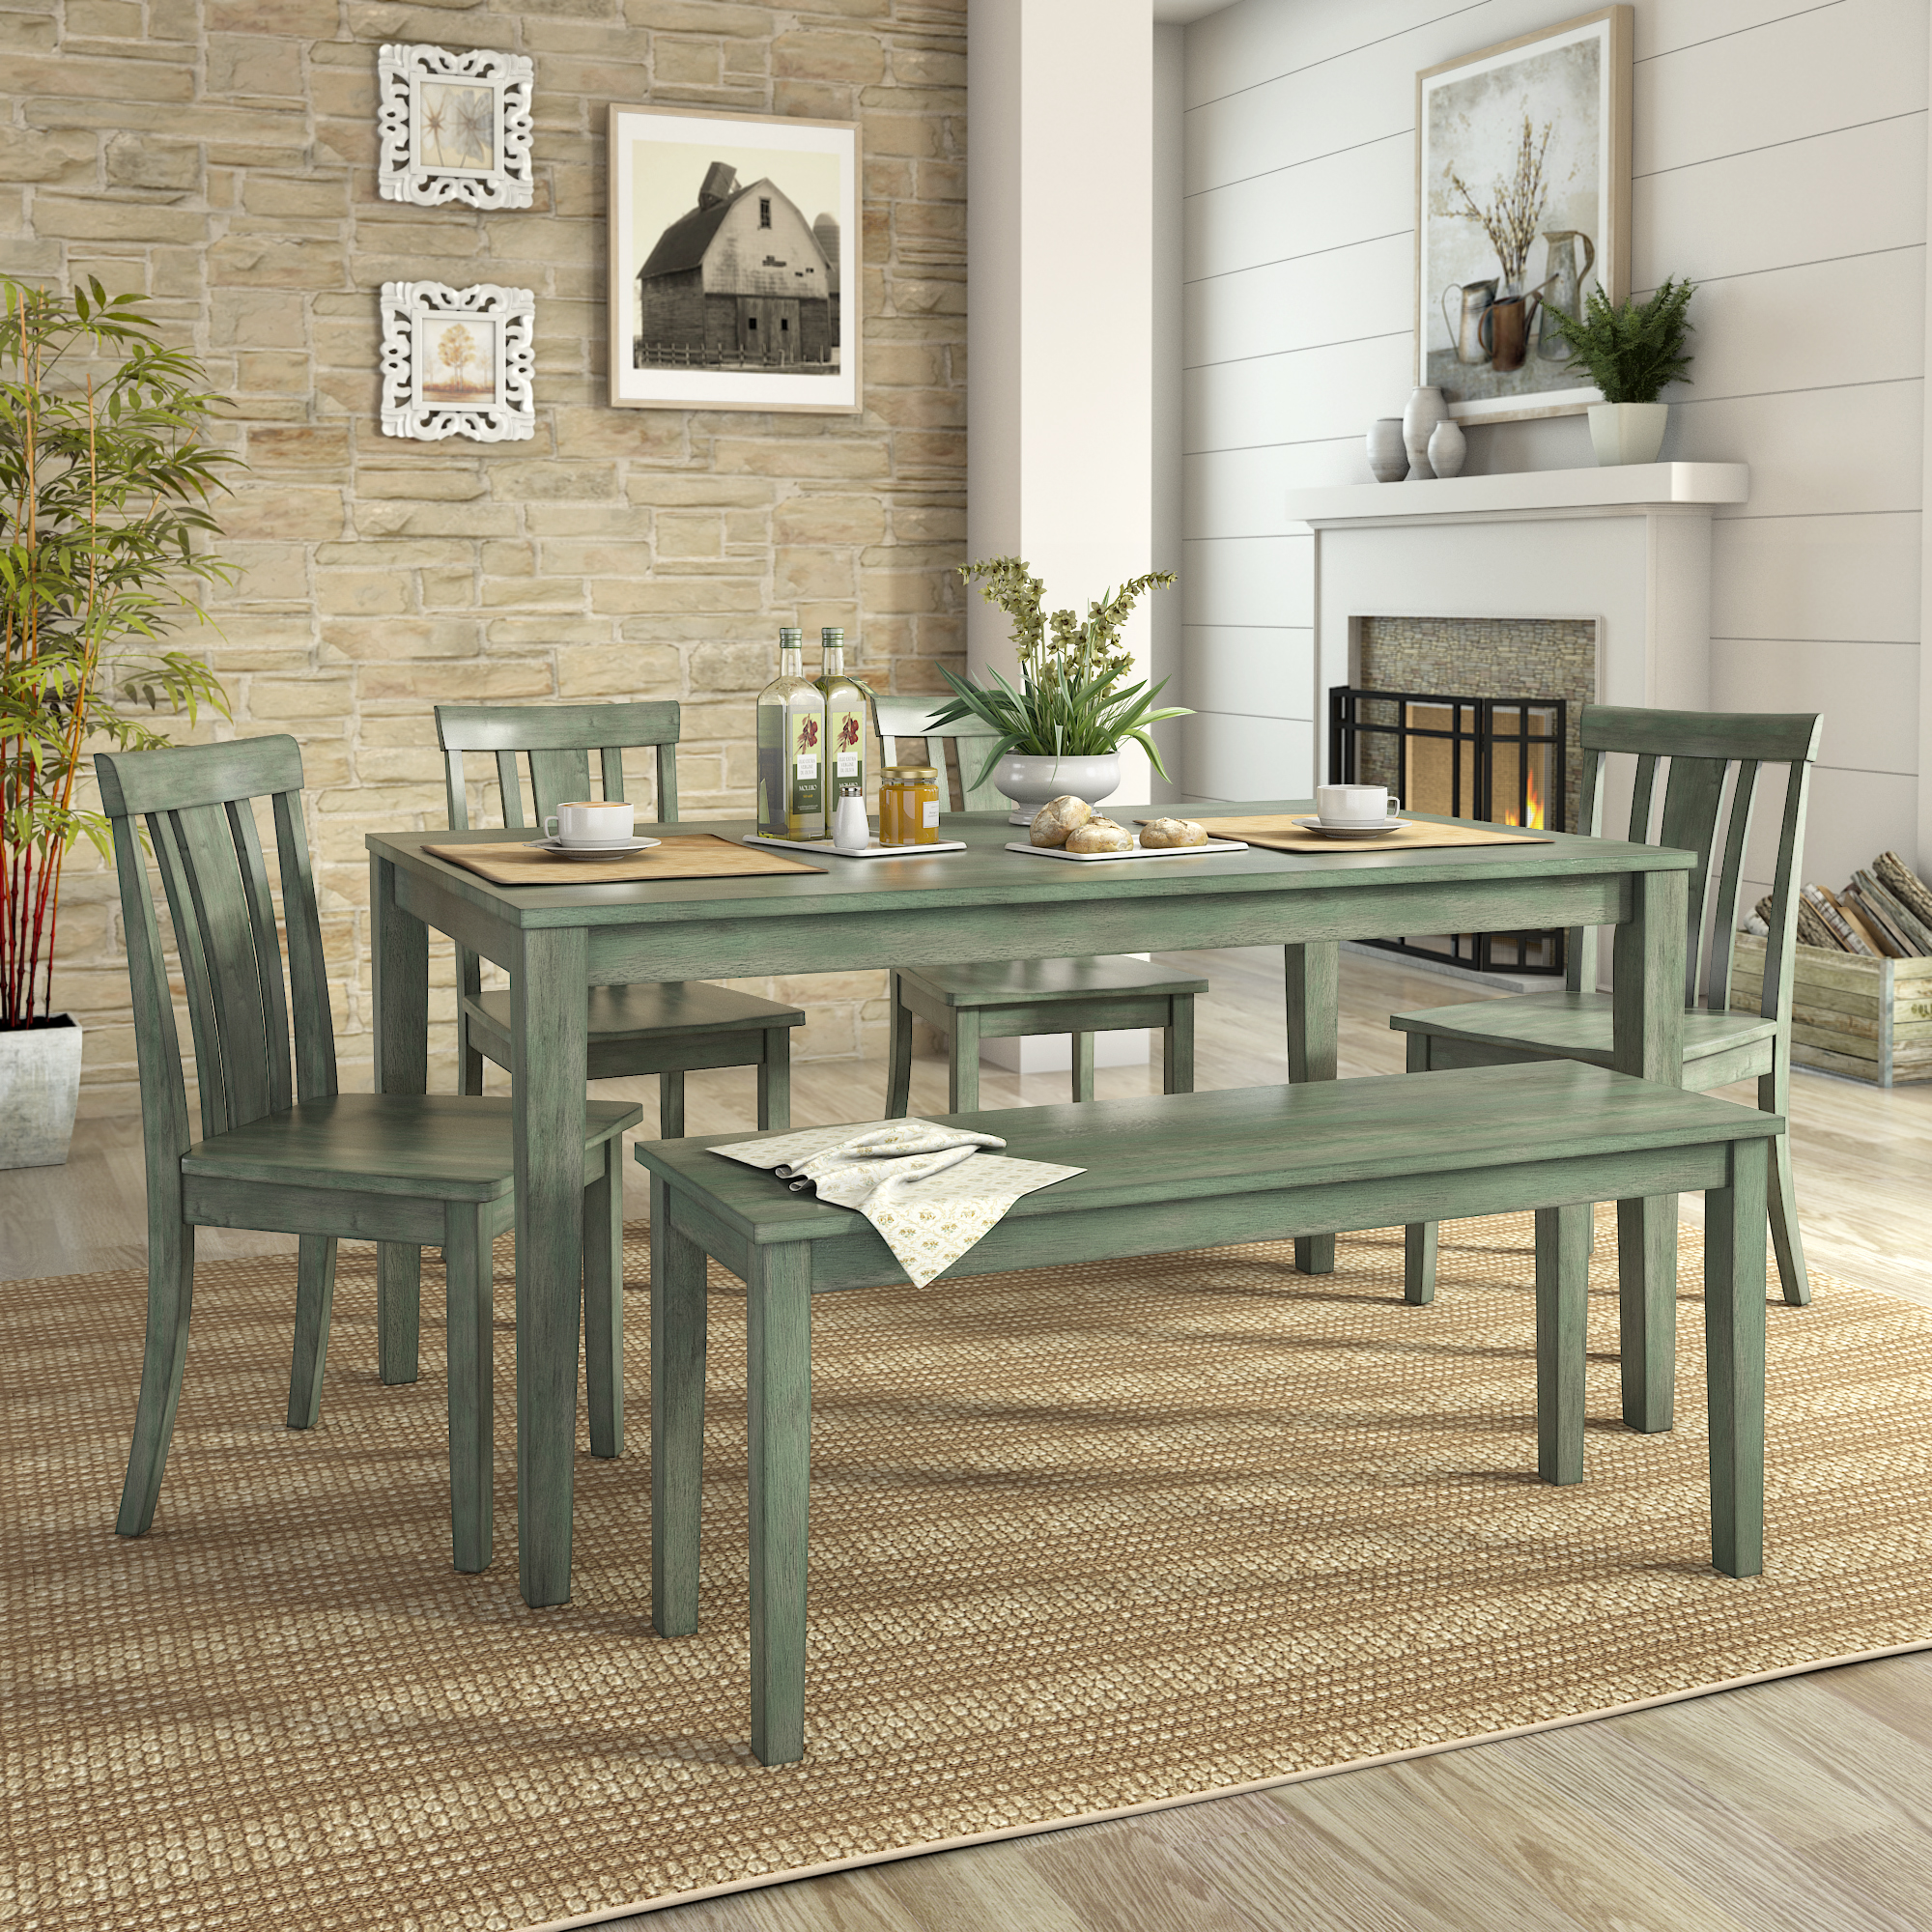 Lexington Large Dining Set with Bench and 4 Slat Back Chairs